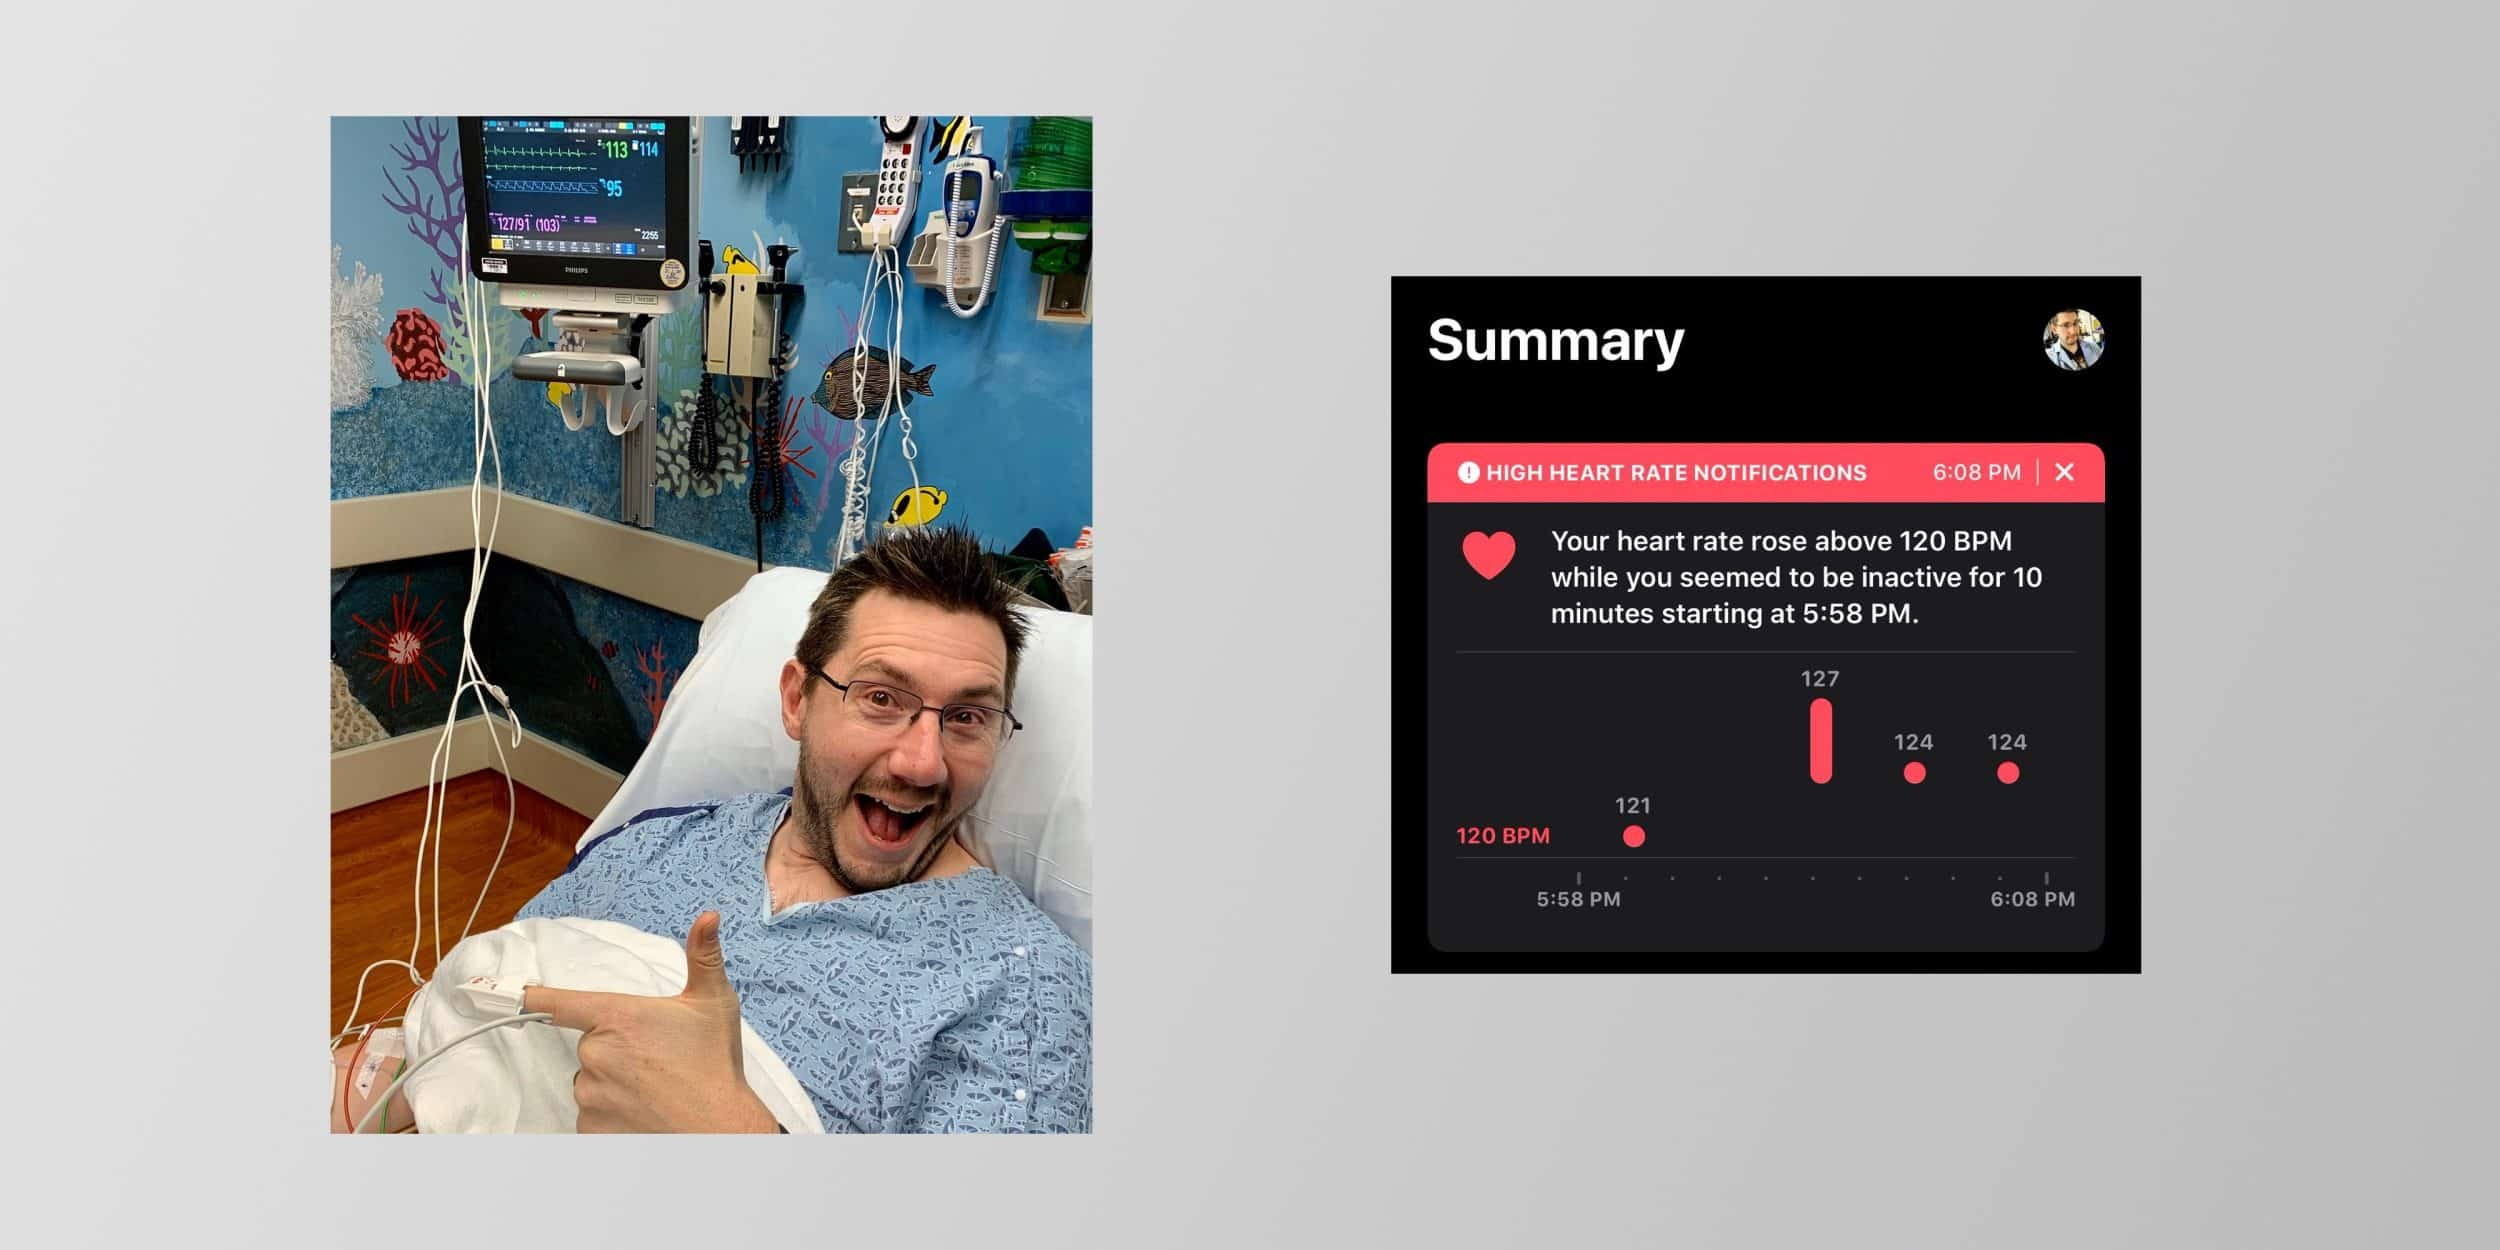 YouTuber Saved by Apple Watch's High Heart Rate Notification